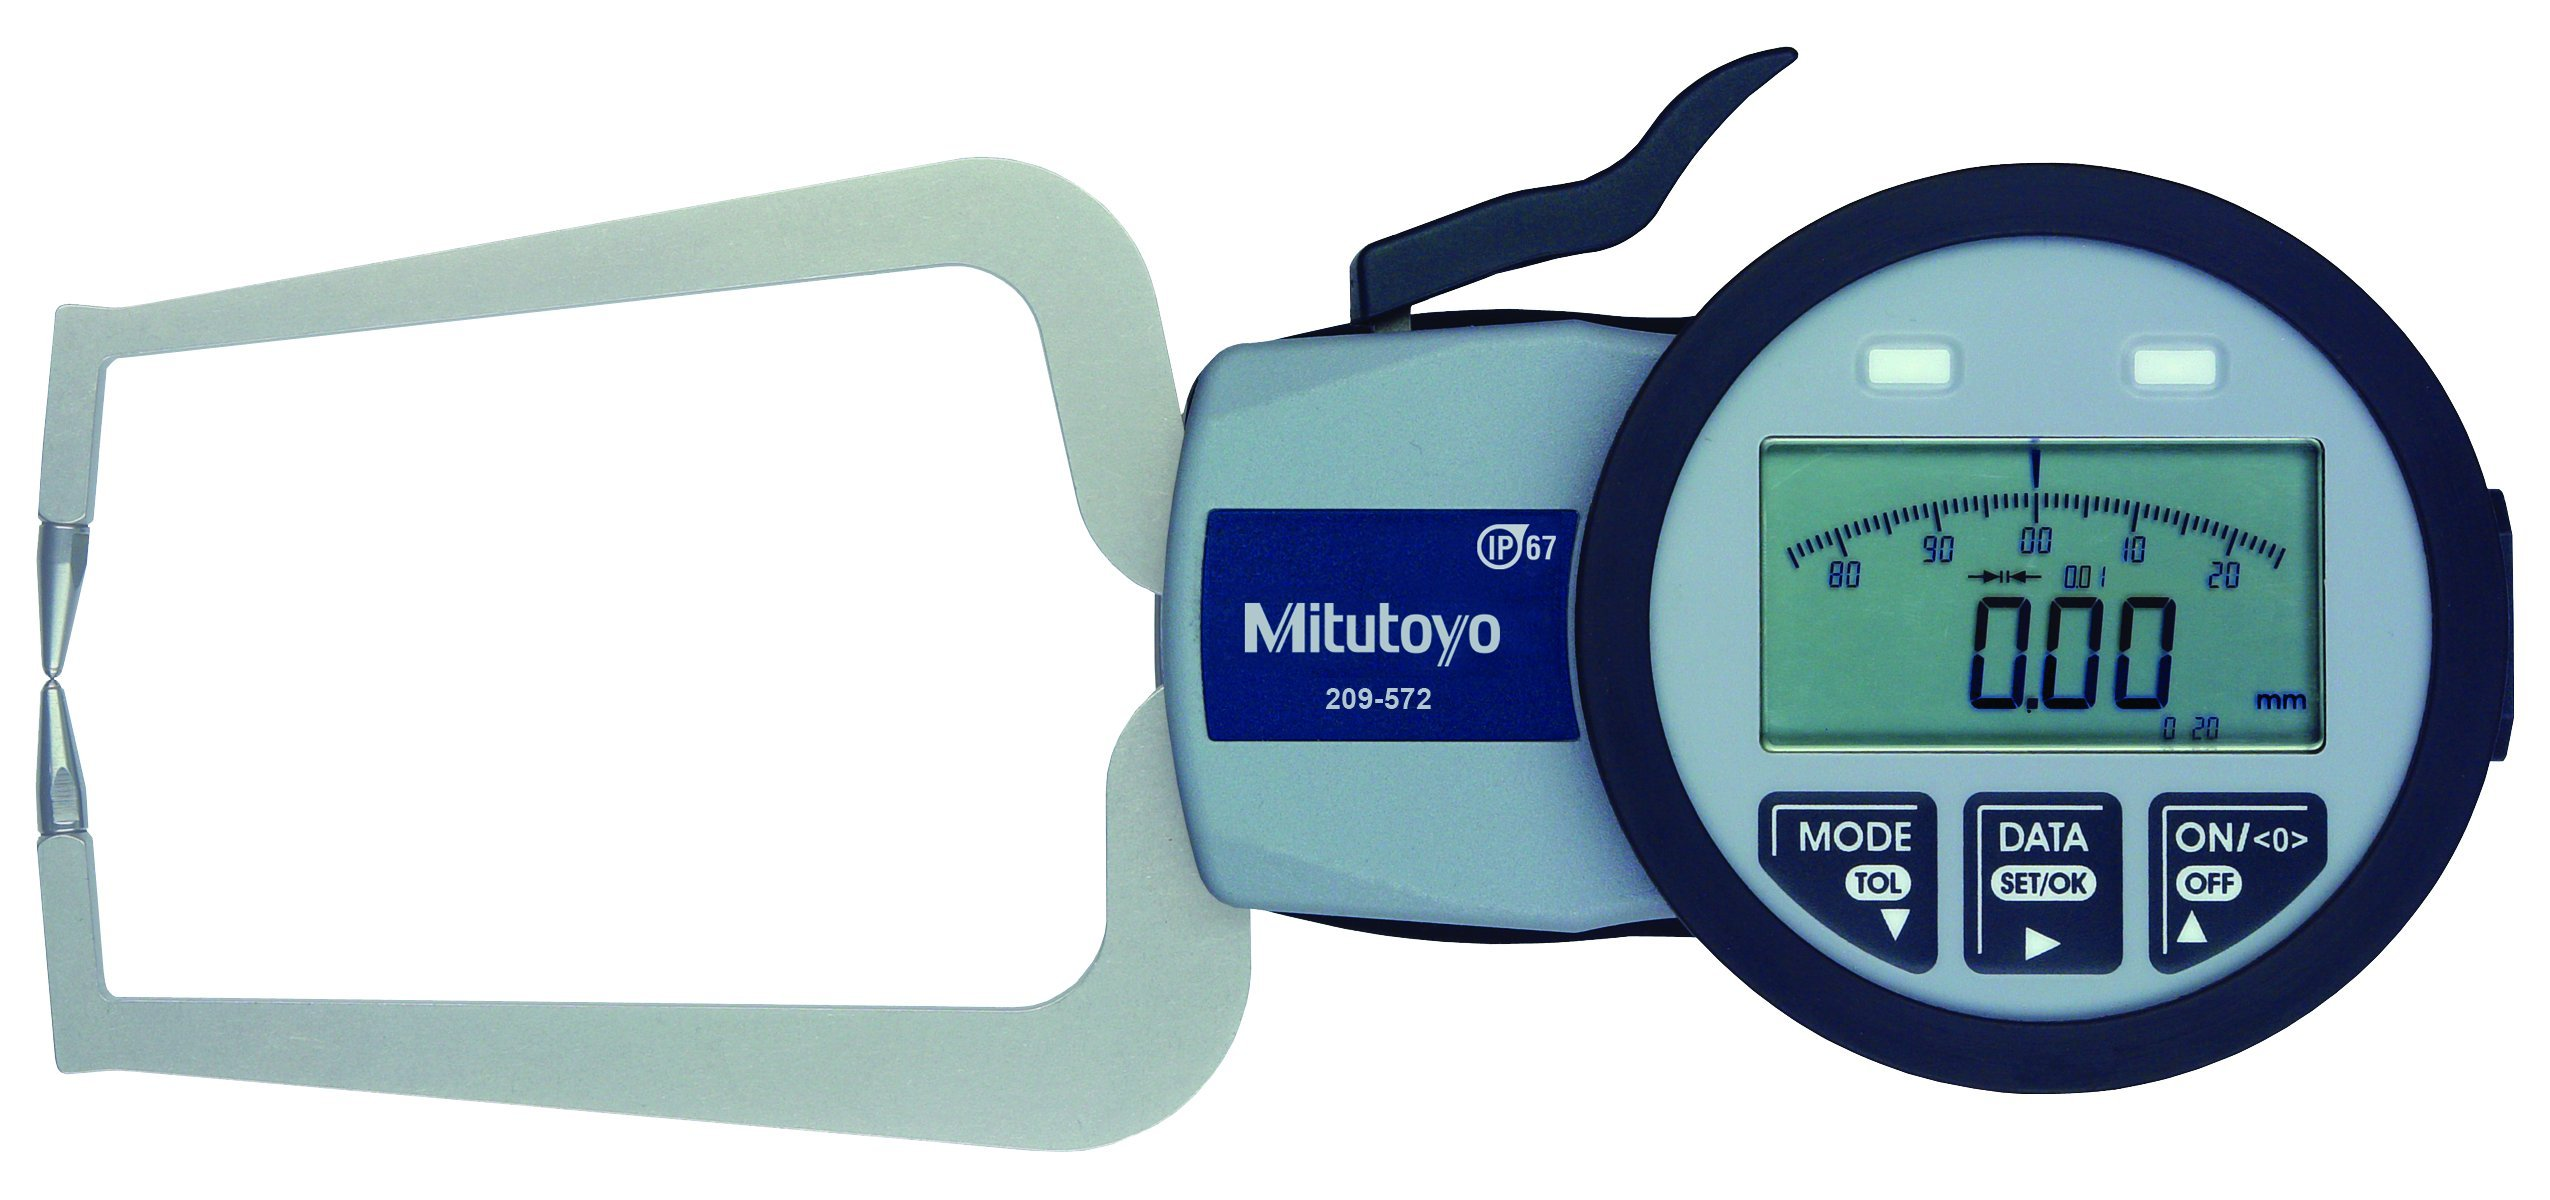 Mitutoyo 209-572 Caliper Gauge, Inch/Metric, Pointed Jaw, 0-0.78'' Range, +/-0.001'' Accuracy, 0.0005'' Resolution, Meets IP63/IP67 Specifications